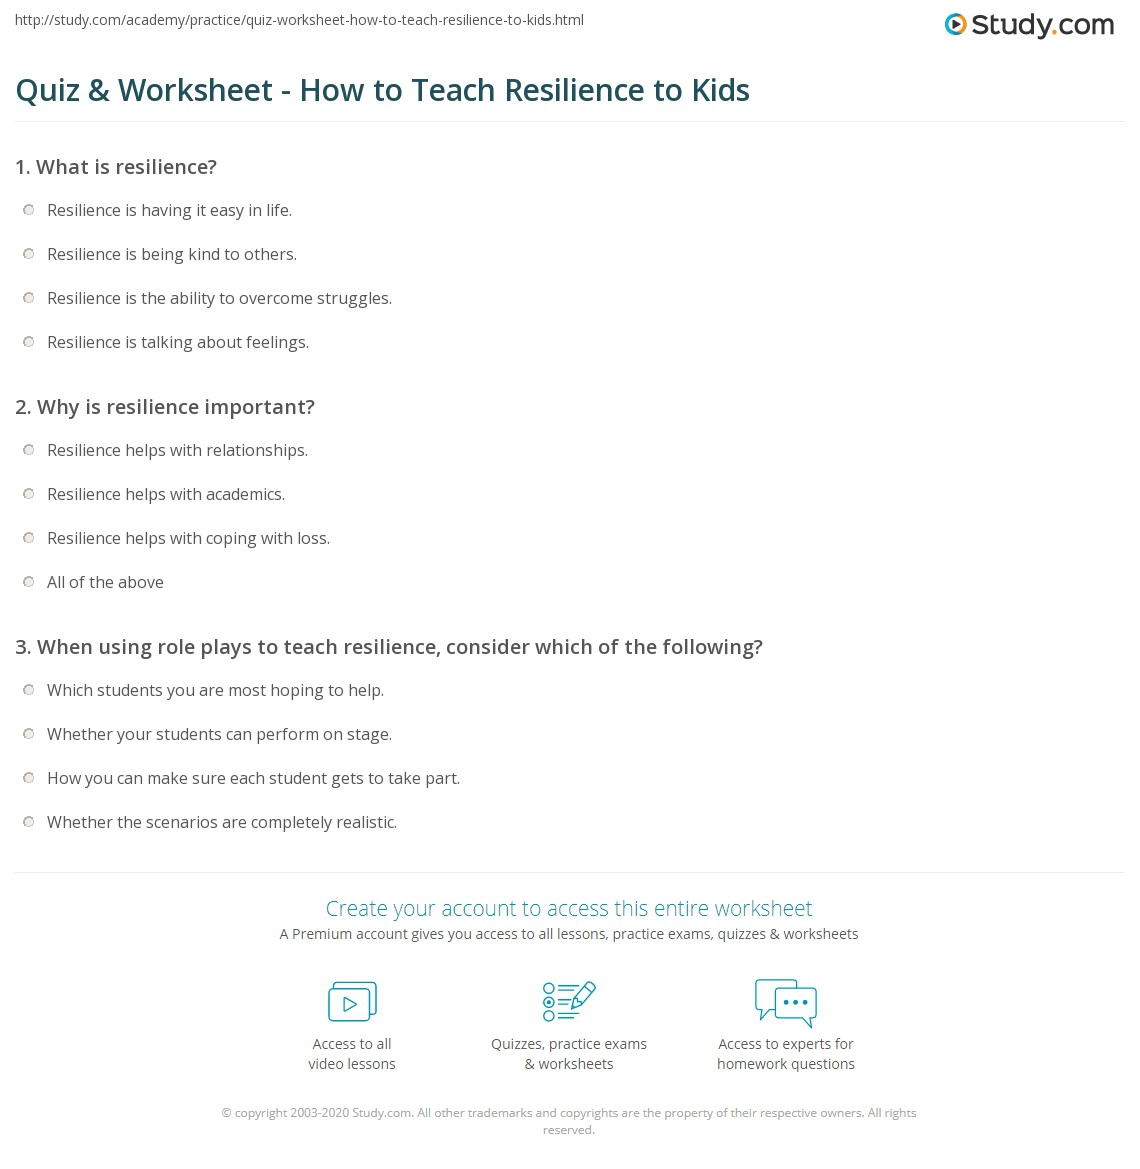 Quiz & Worksheet - How to Teach Resilience to Kids | Study.com